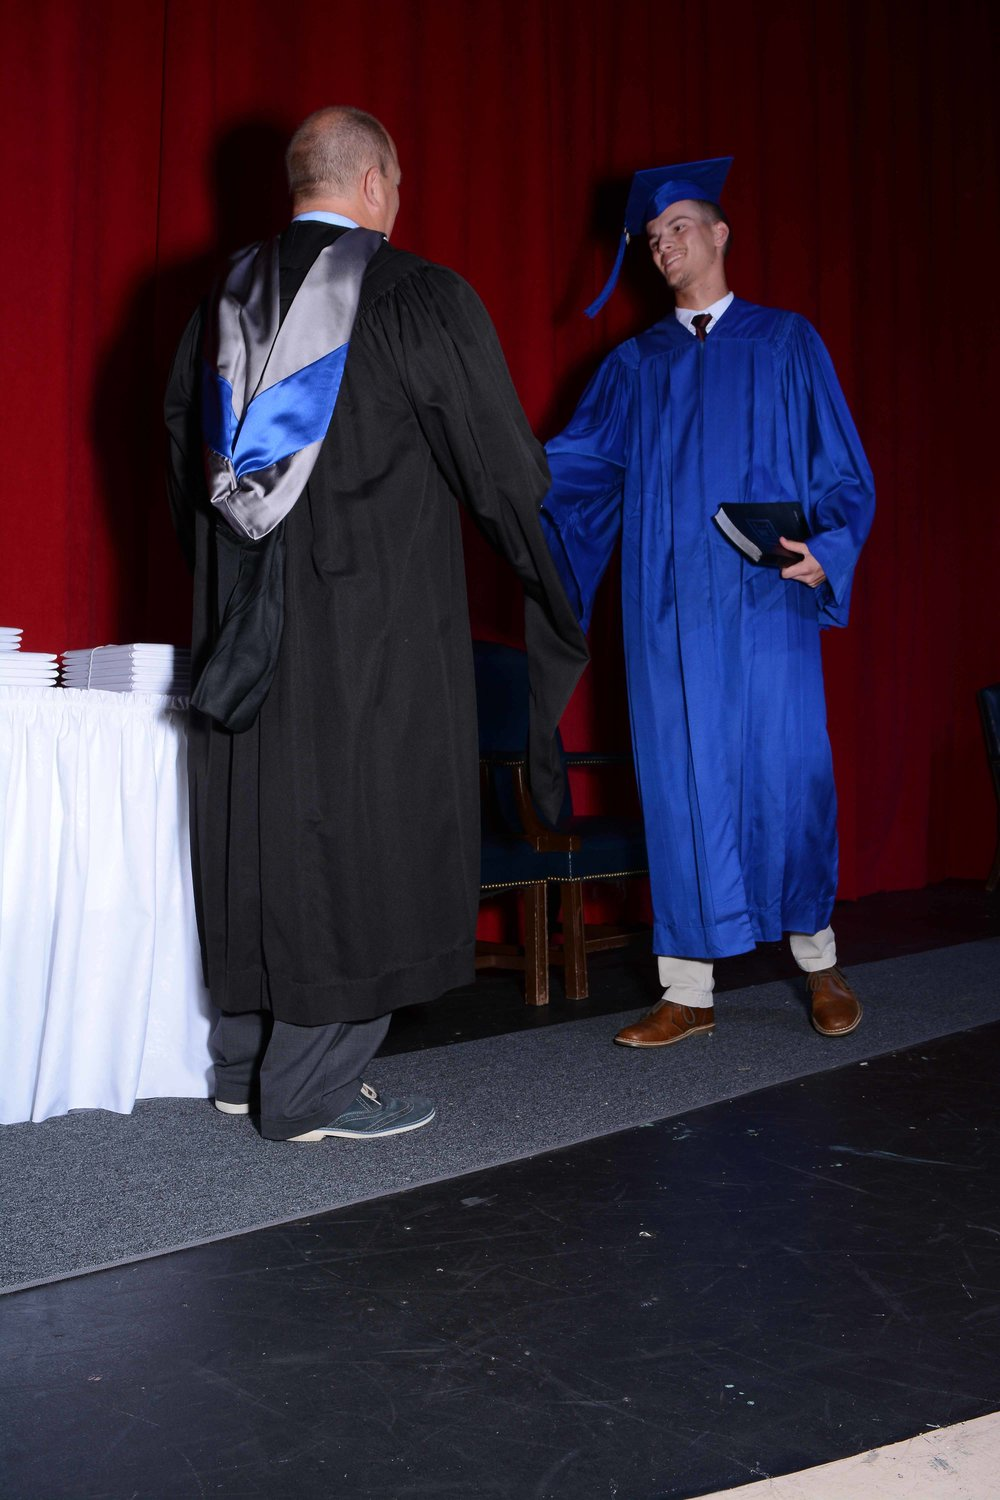 May14 Commencement134.jpg